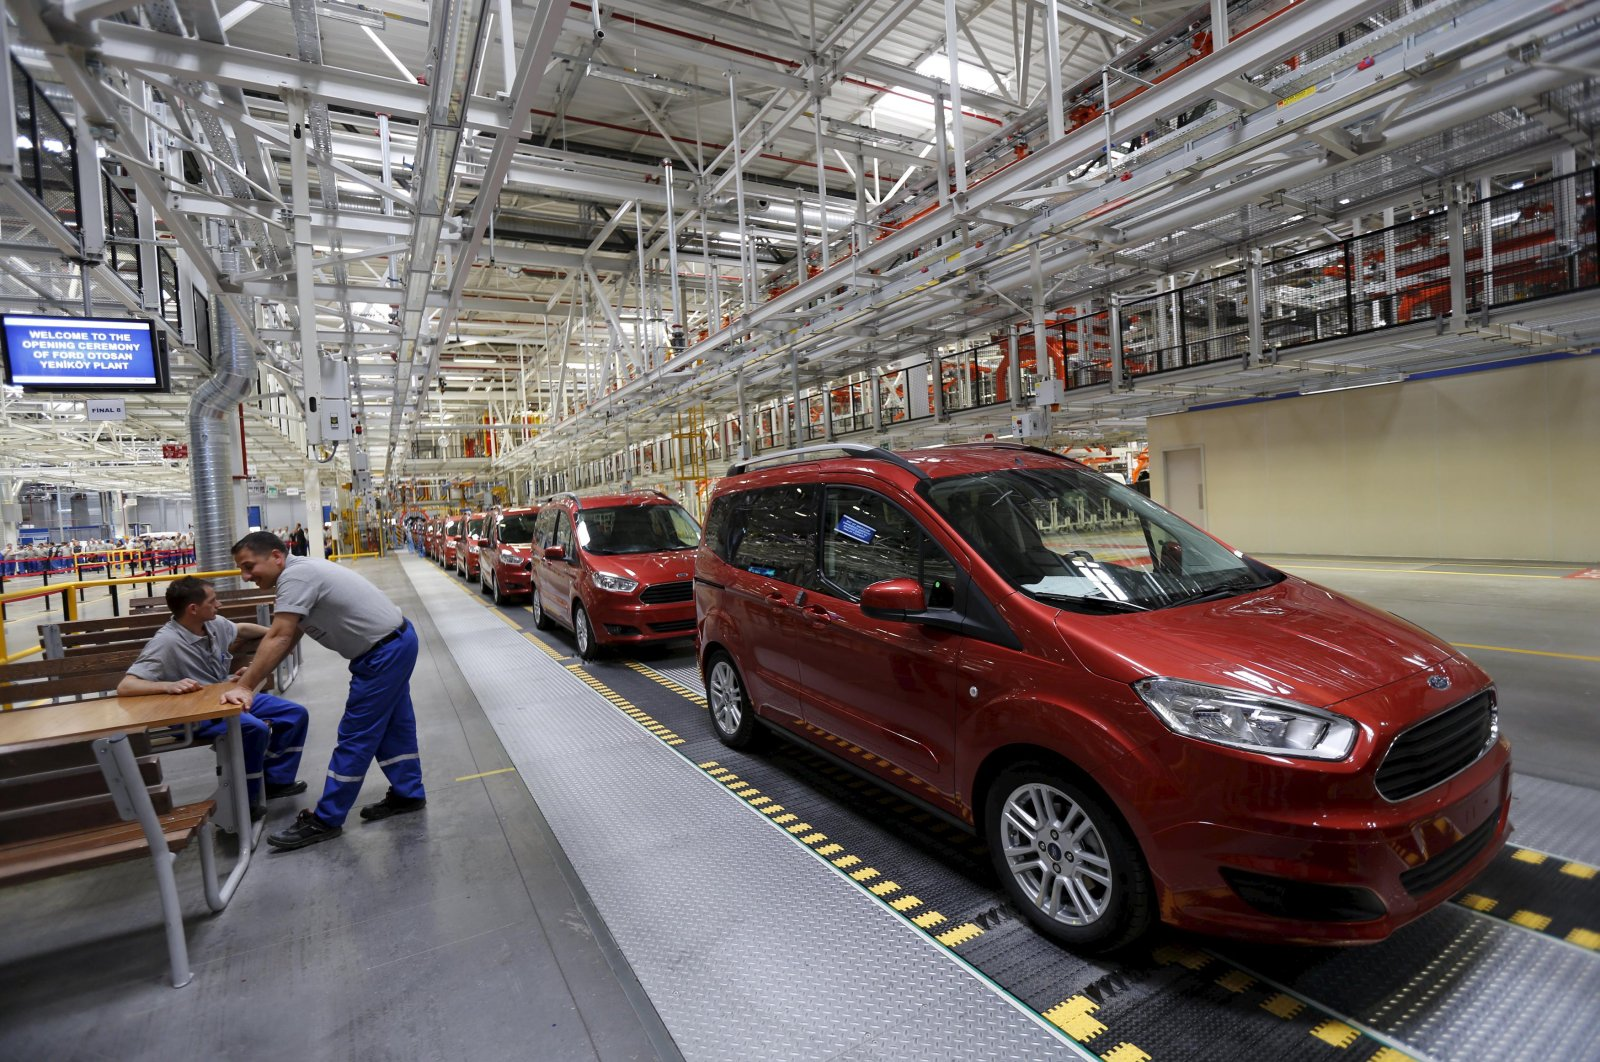 Ford Tourneo Courier light commercial vehicles are pictured at the Ford Otosan Yeniköy Factory in Kocaeli, Turkey, May 22, 2014. (Reuters Photo)